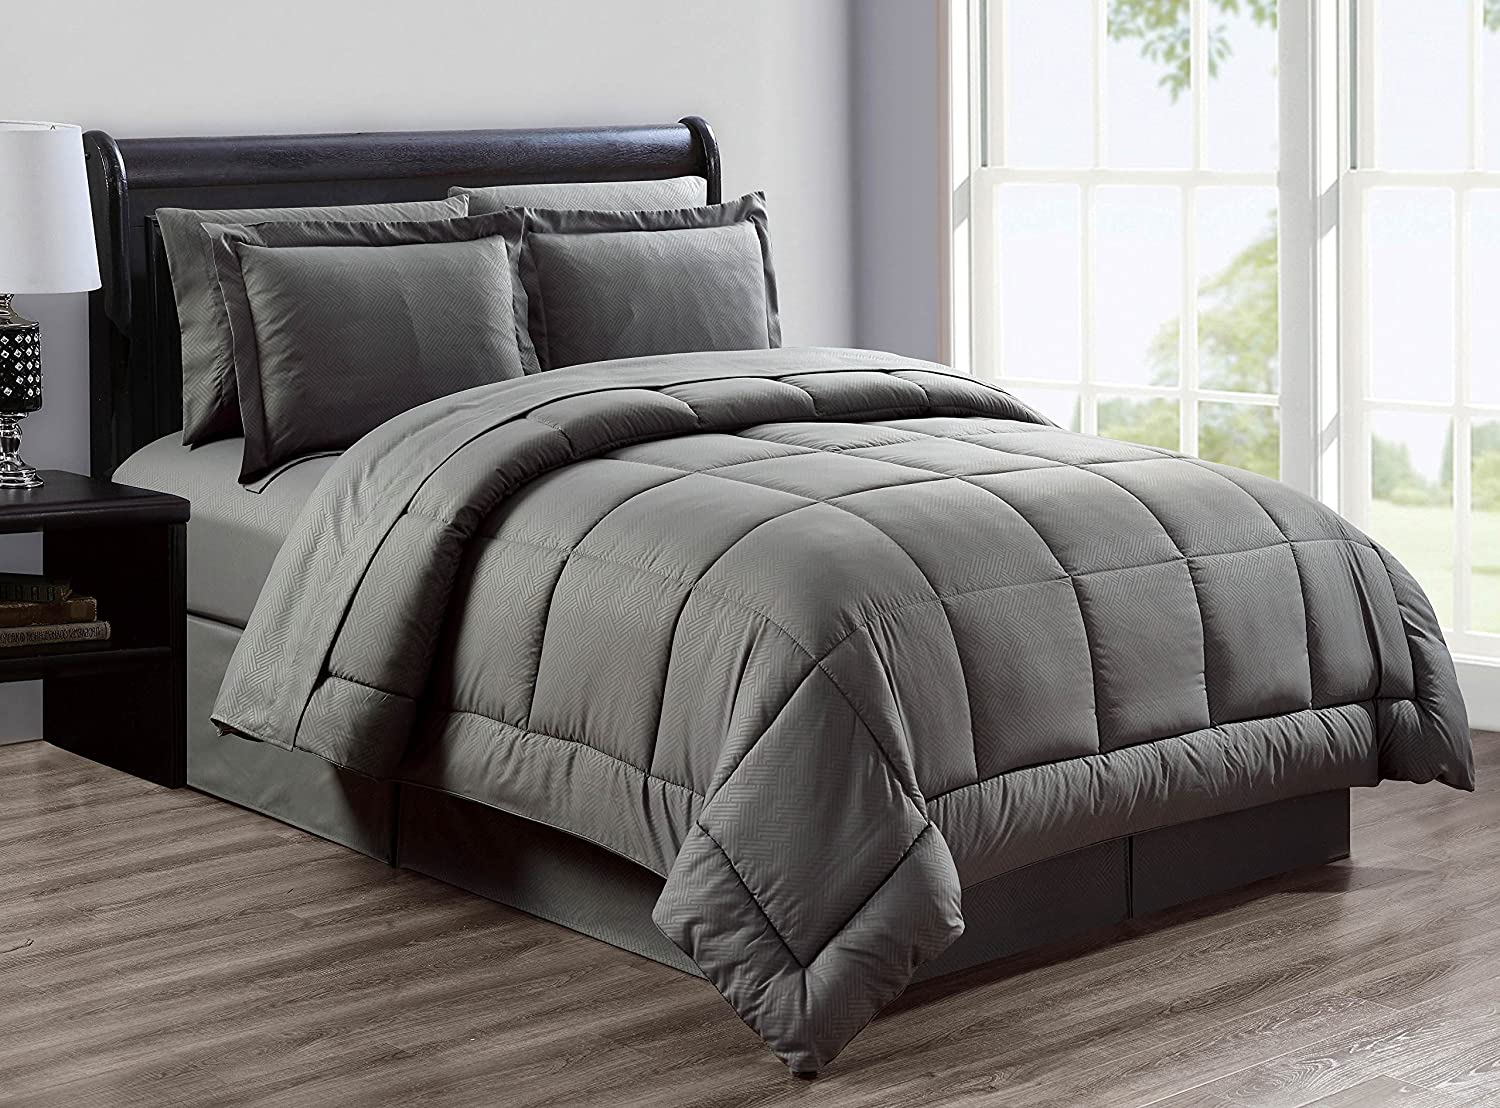 Milan Fashion Collection Queen Size Grey 8 Piece Bed in a Bag